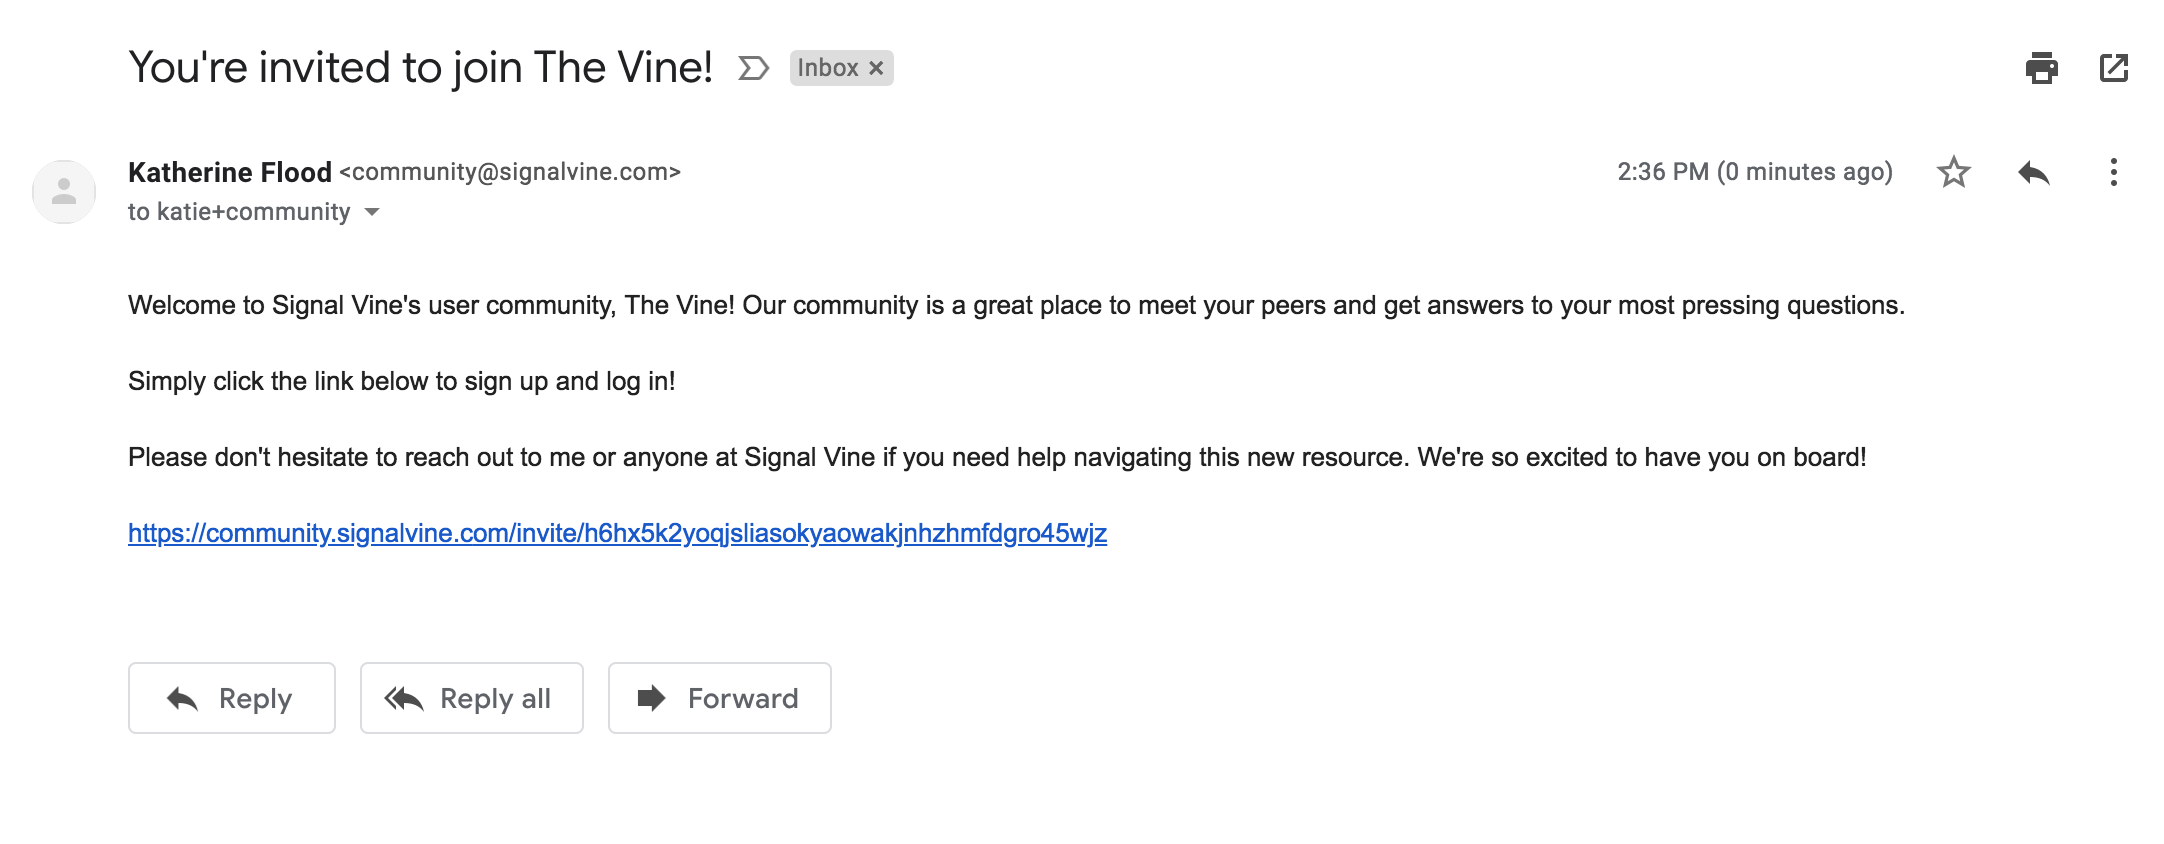 Image of 'The Vine' Invitation email